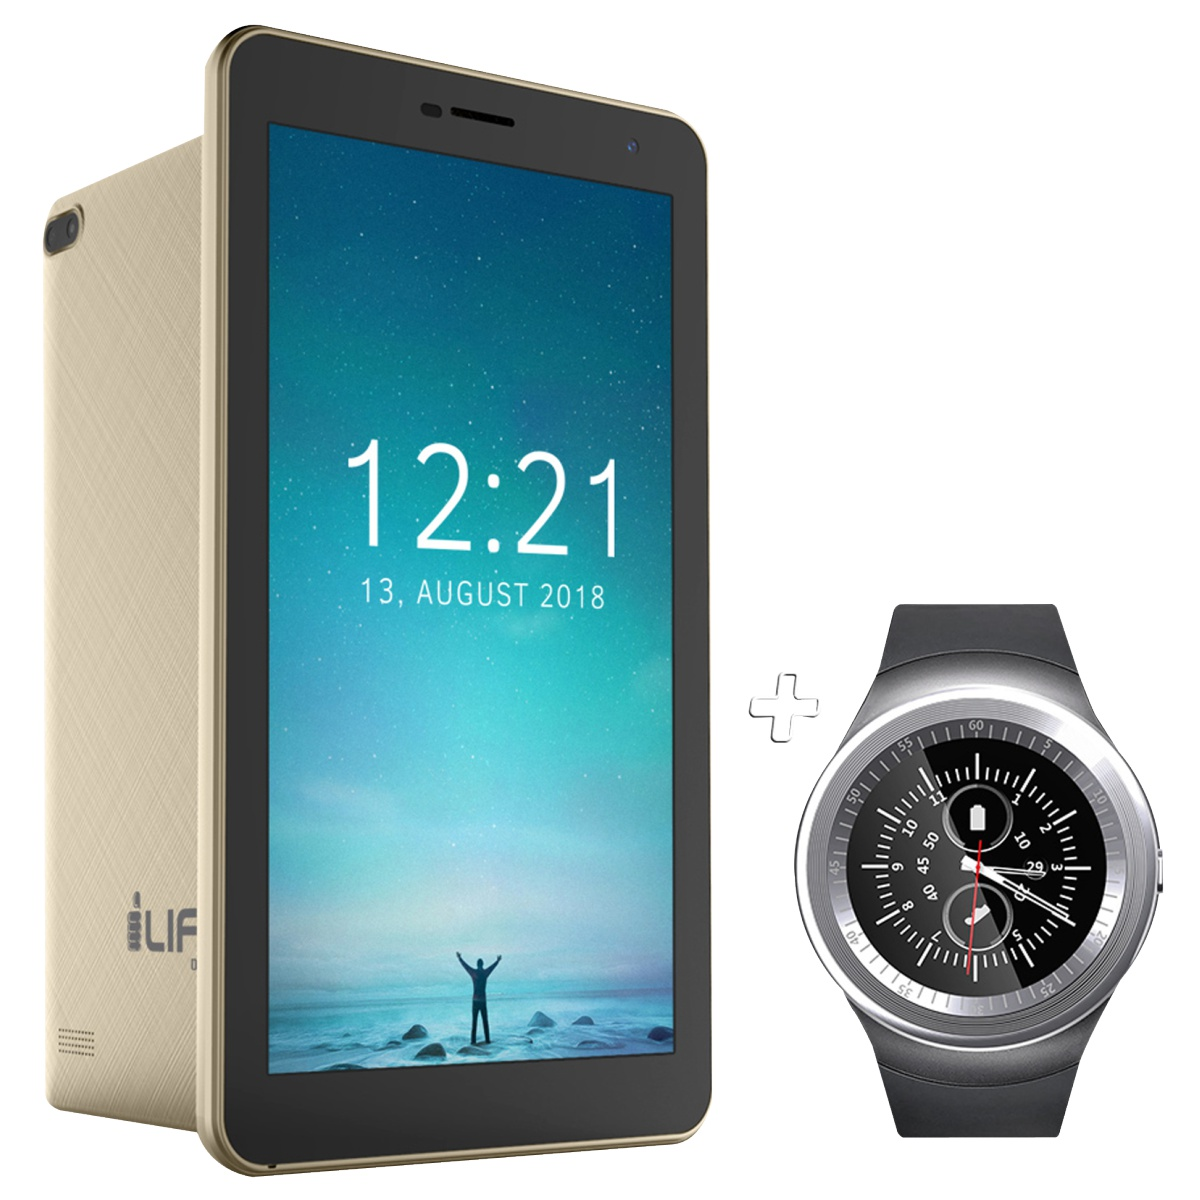 1-Life Gold Tablet + Watch Combo